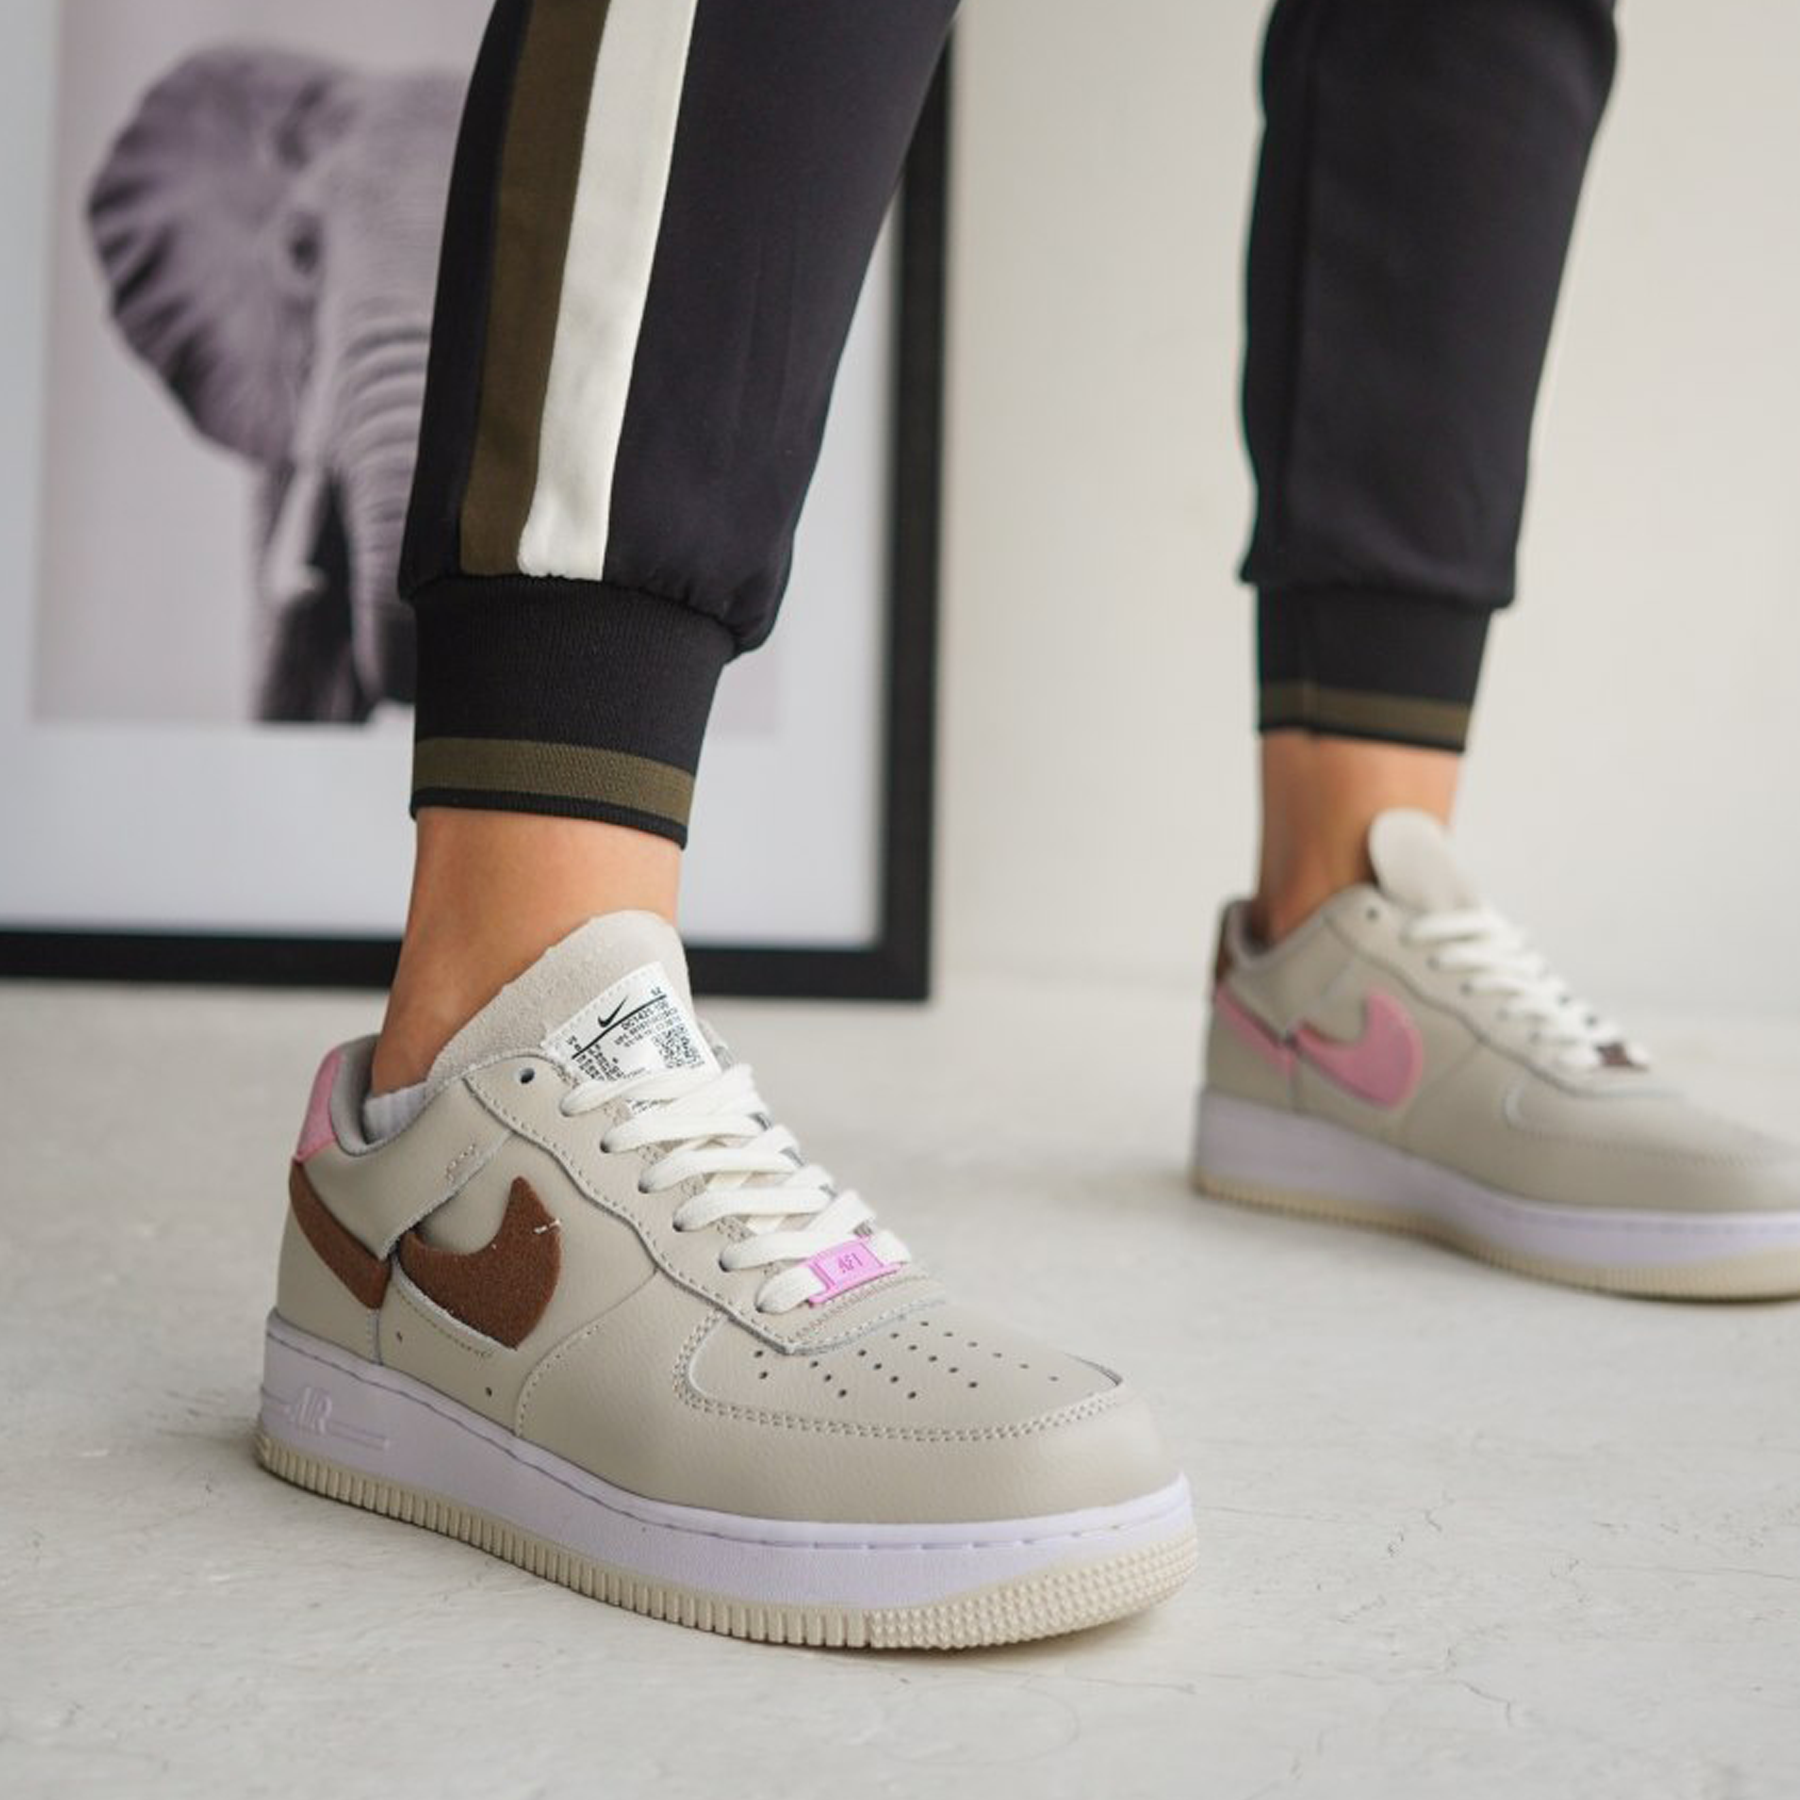 Кроссовки женские Nike air force 1 inside out white red blue premium